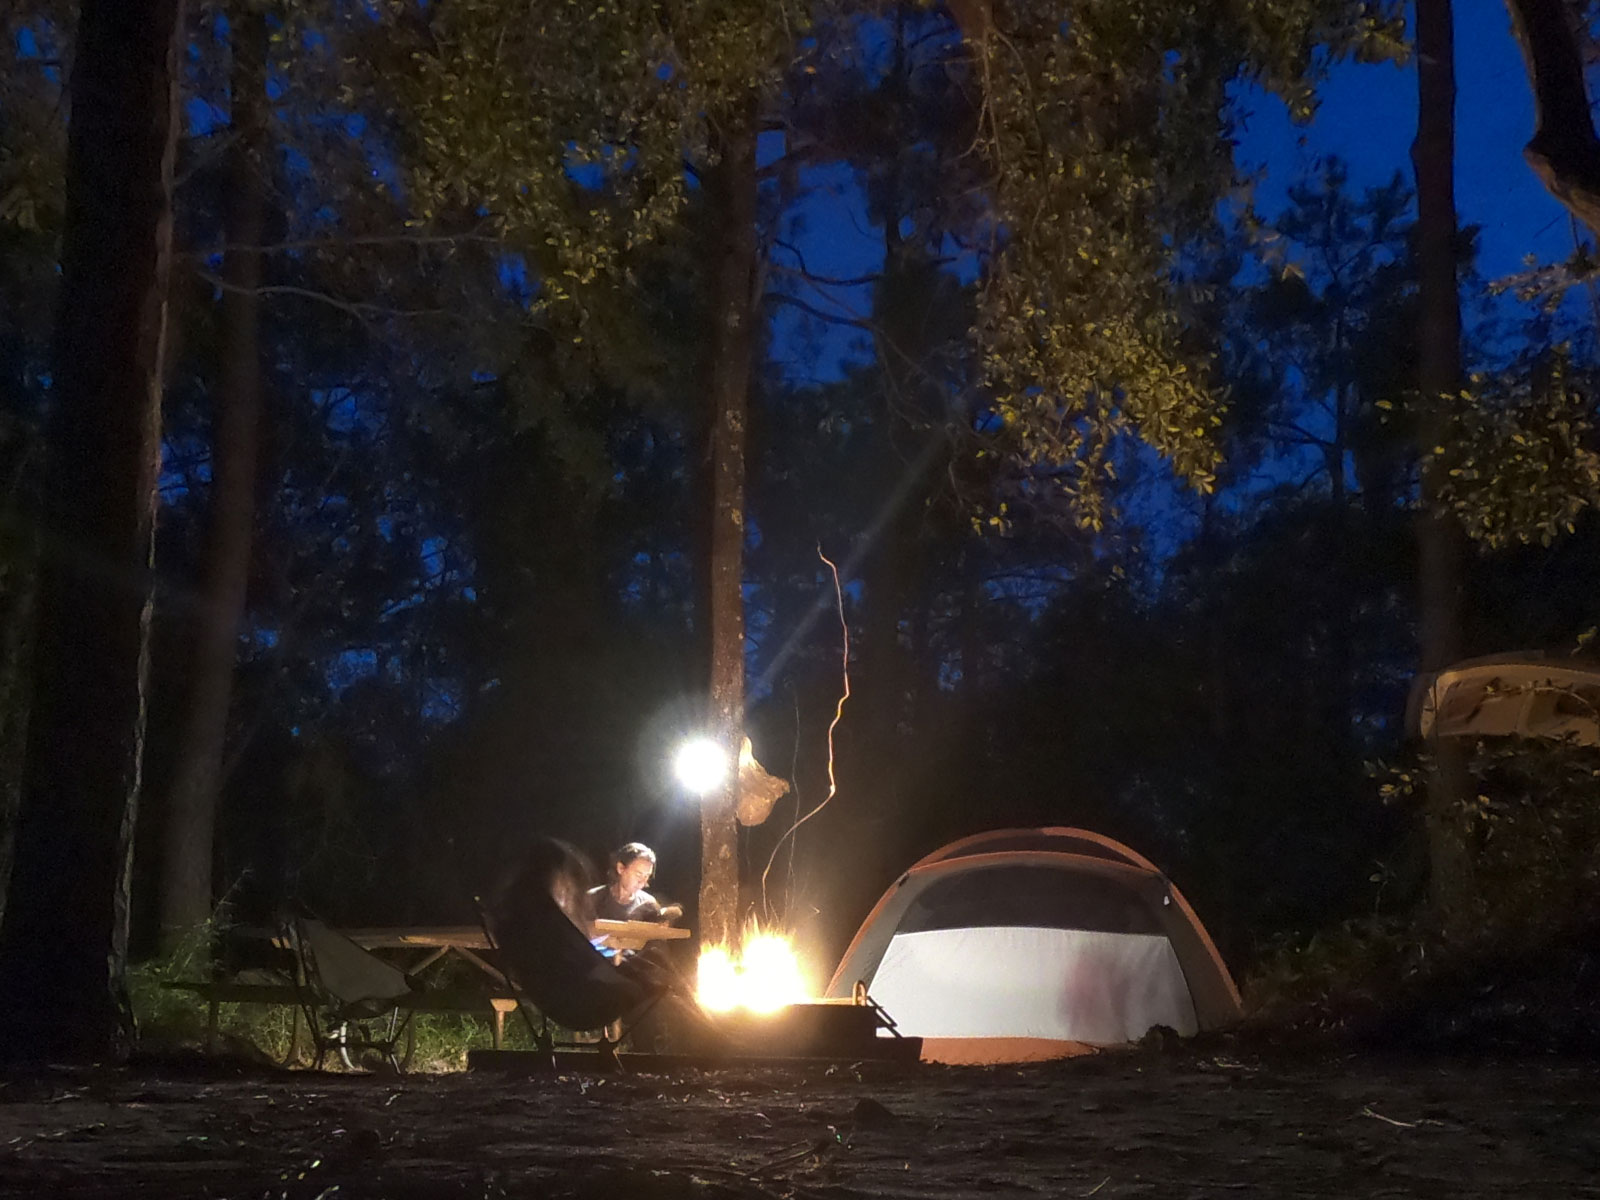 Night camping under the stars at Carolina Beach State Park Campground, North Carolina